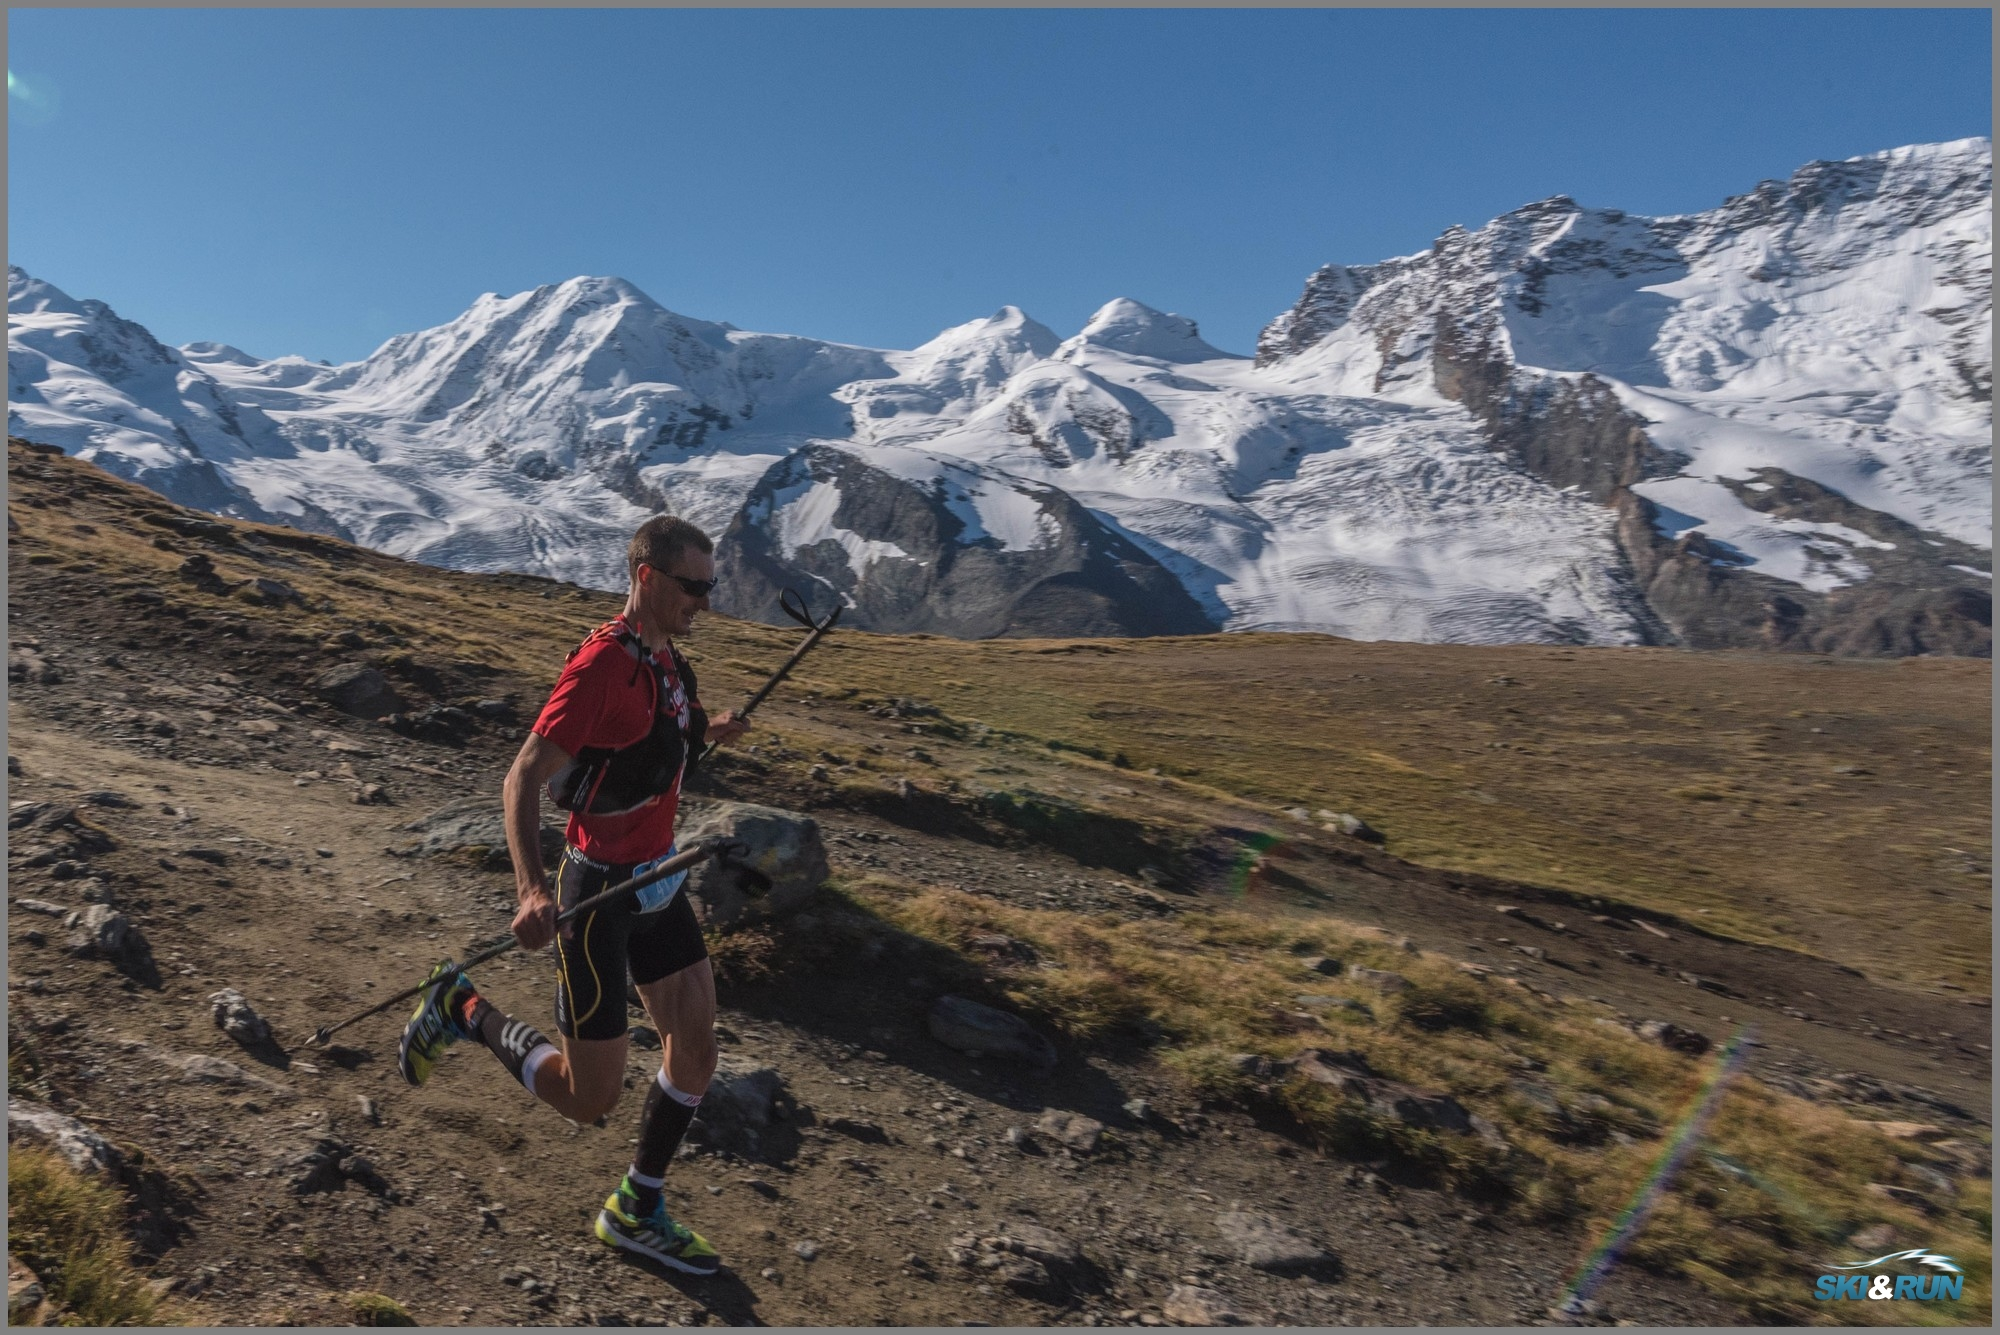 22 08 2015 Ultracks 1 sur 1 14 - PORTRAIT : LIONEL POLETTI DU SKI ALPIN AU TRAIL !